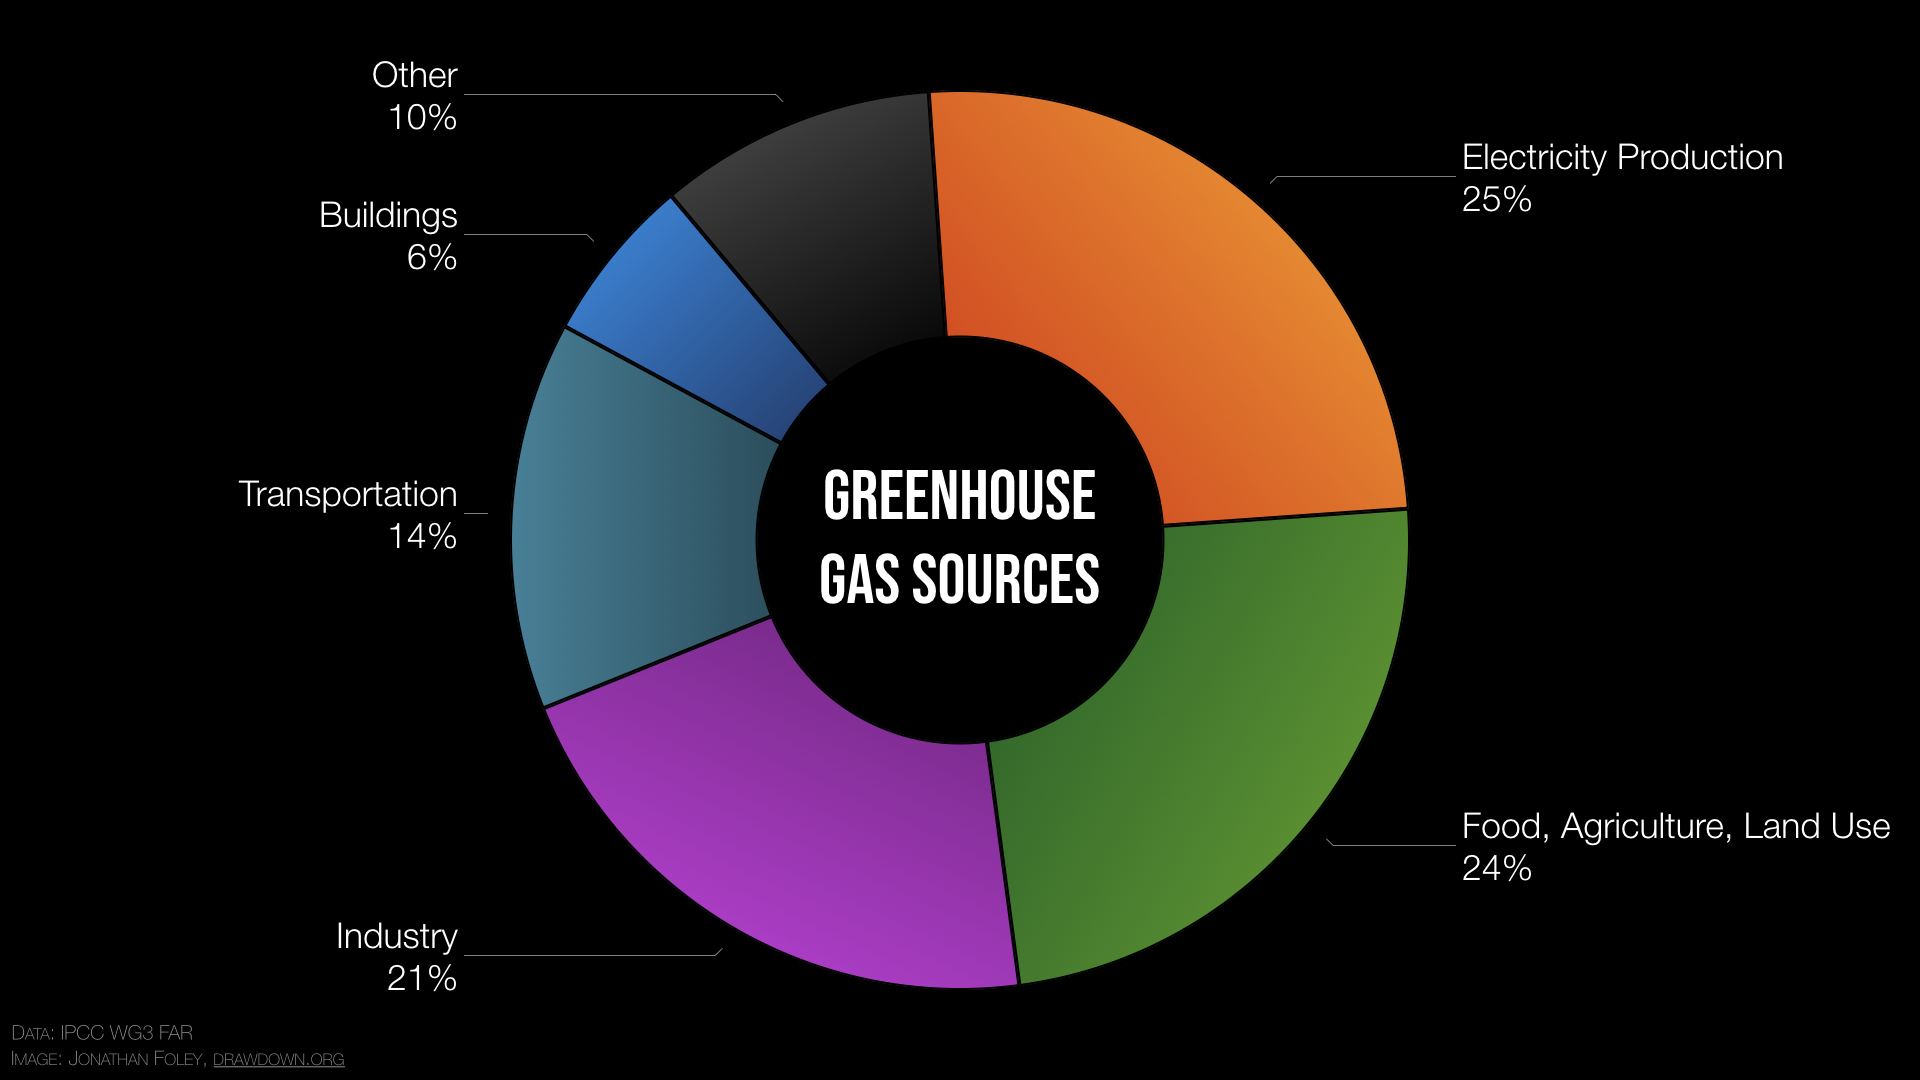 Wonder where greenhouse gases come from?  Here are two plots I put together showing the major sources, and the different activities that create them. It's based on global emissions inventories reported in the IPCC Third Working Group, 5th Assessment.  What surprises you most? https://t.co/mbfE7b7D0l